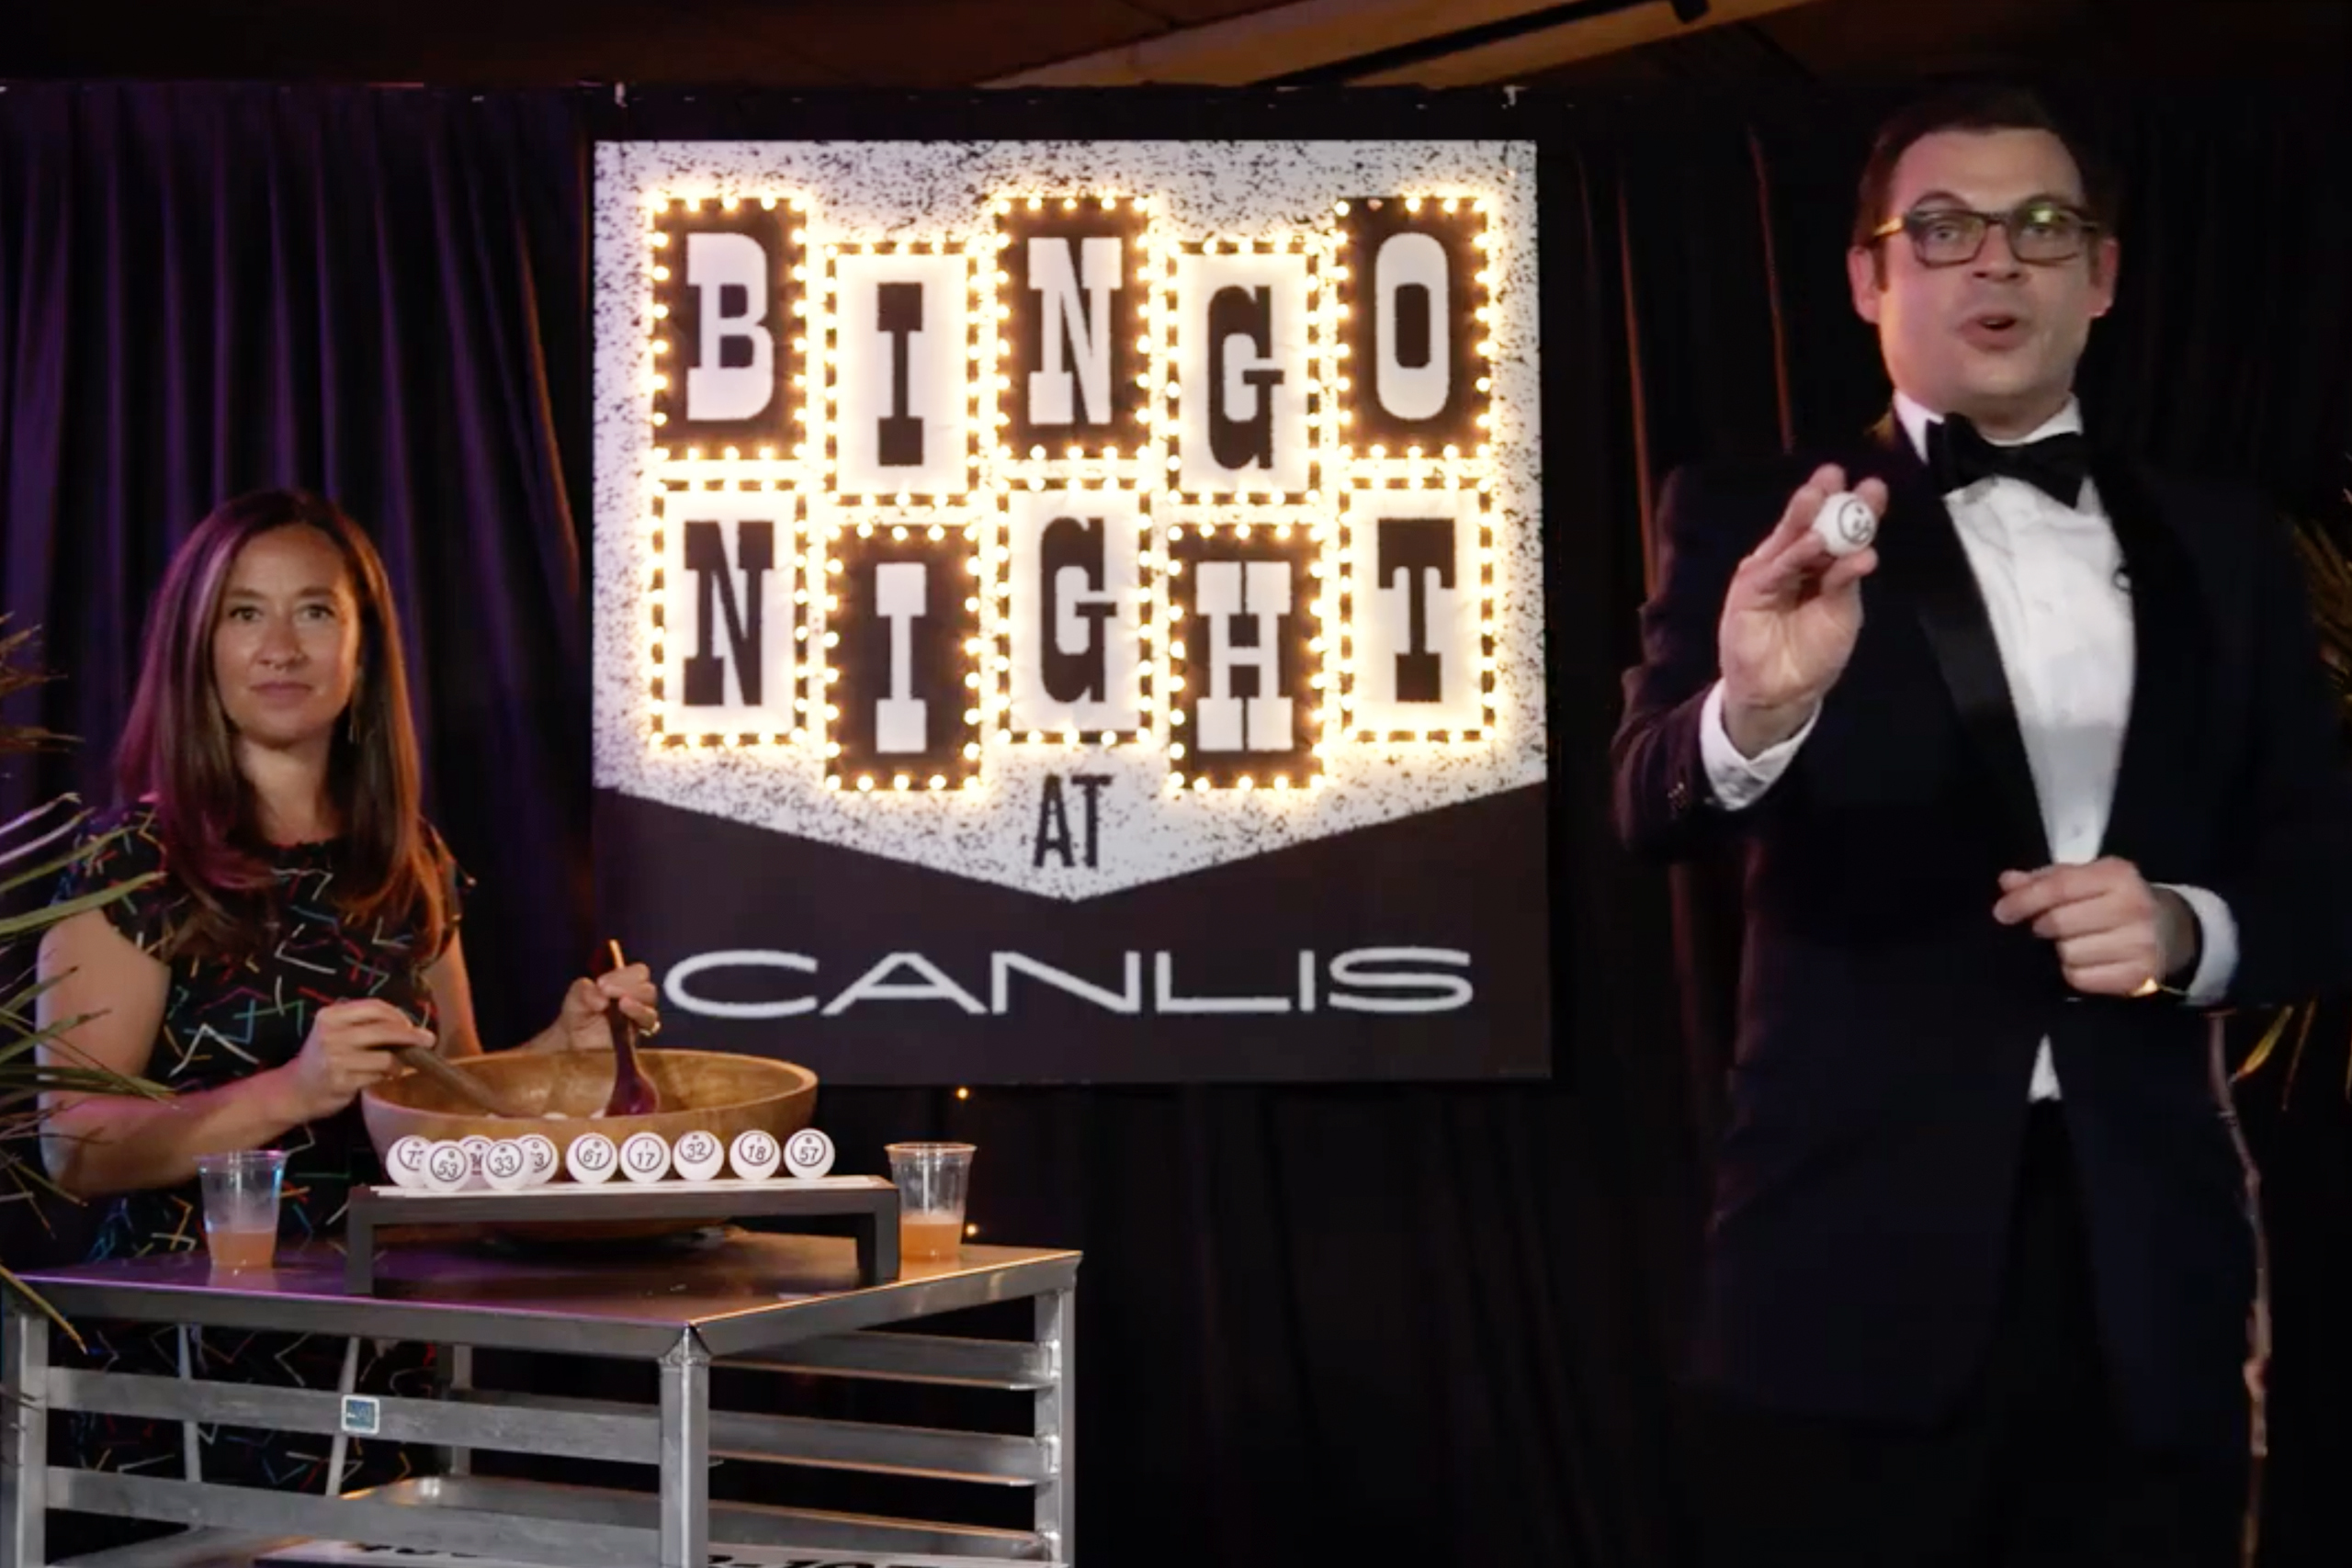 Canlis bingo night